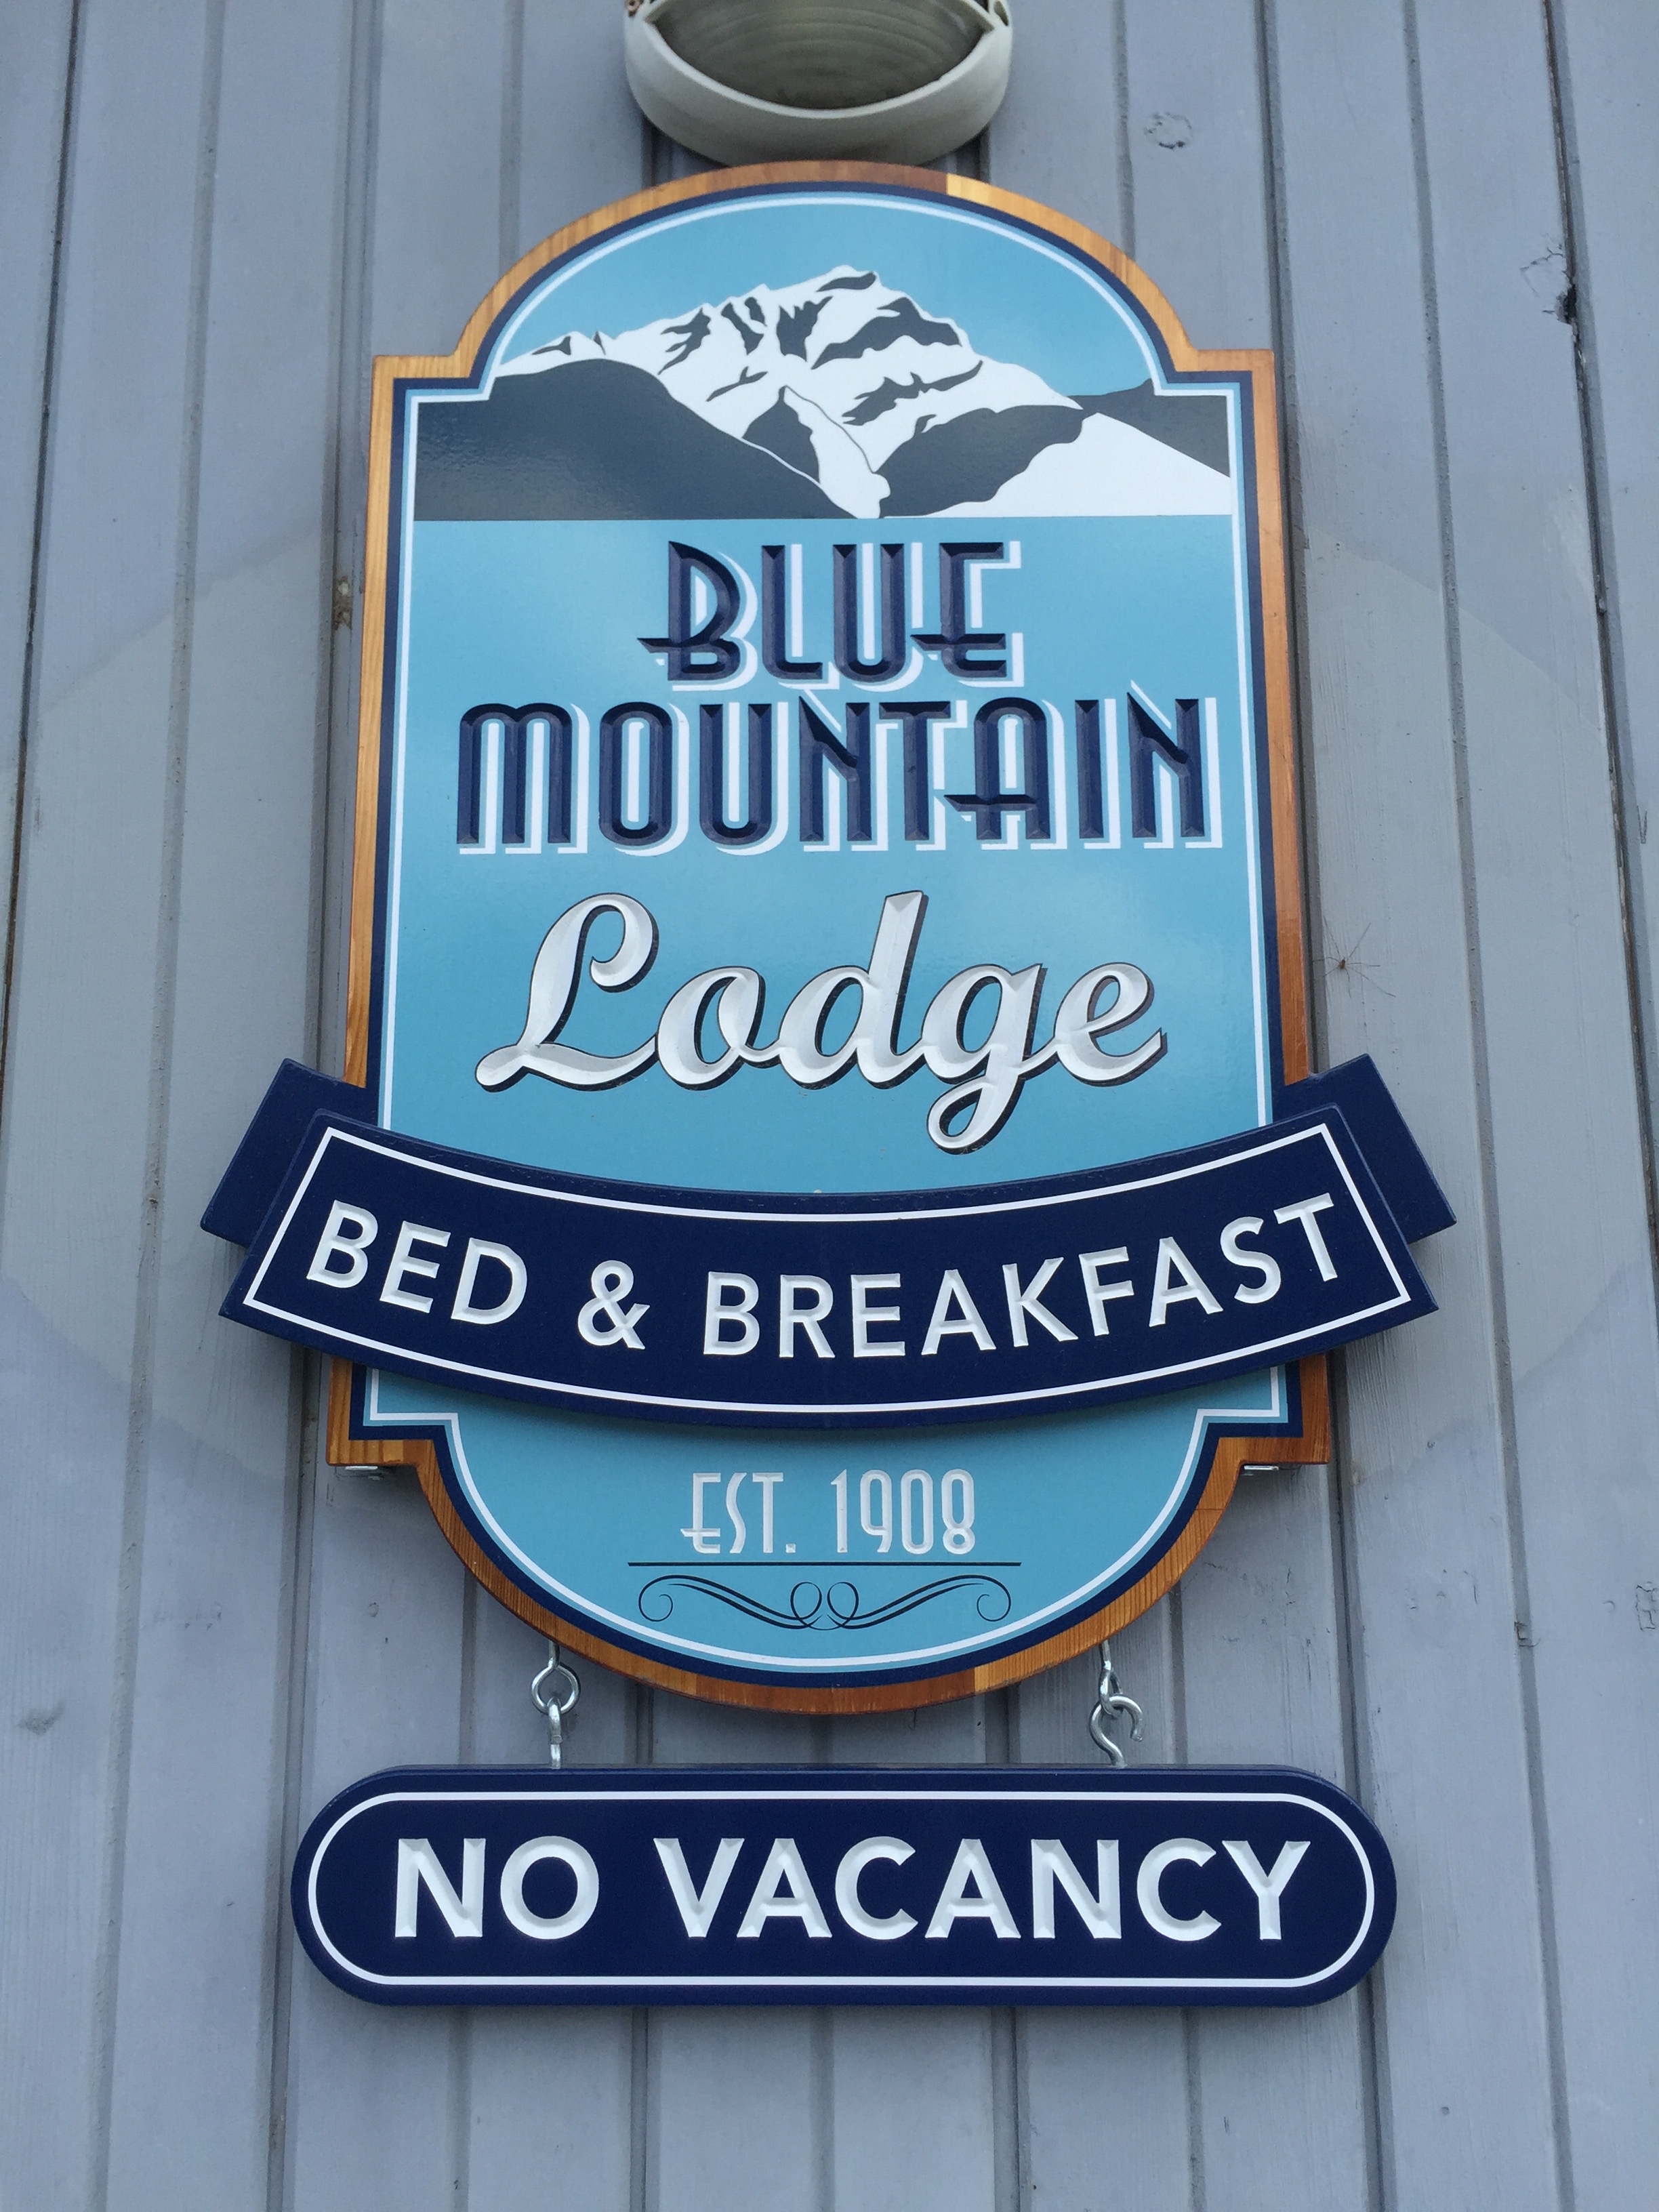 Blue Mountain lodge B&B | Banff, Alberta Canada | 2015 Heather Woolery All Rights Reserved